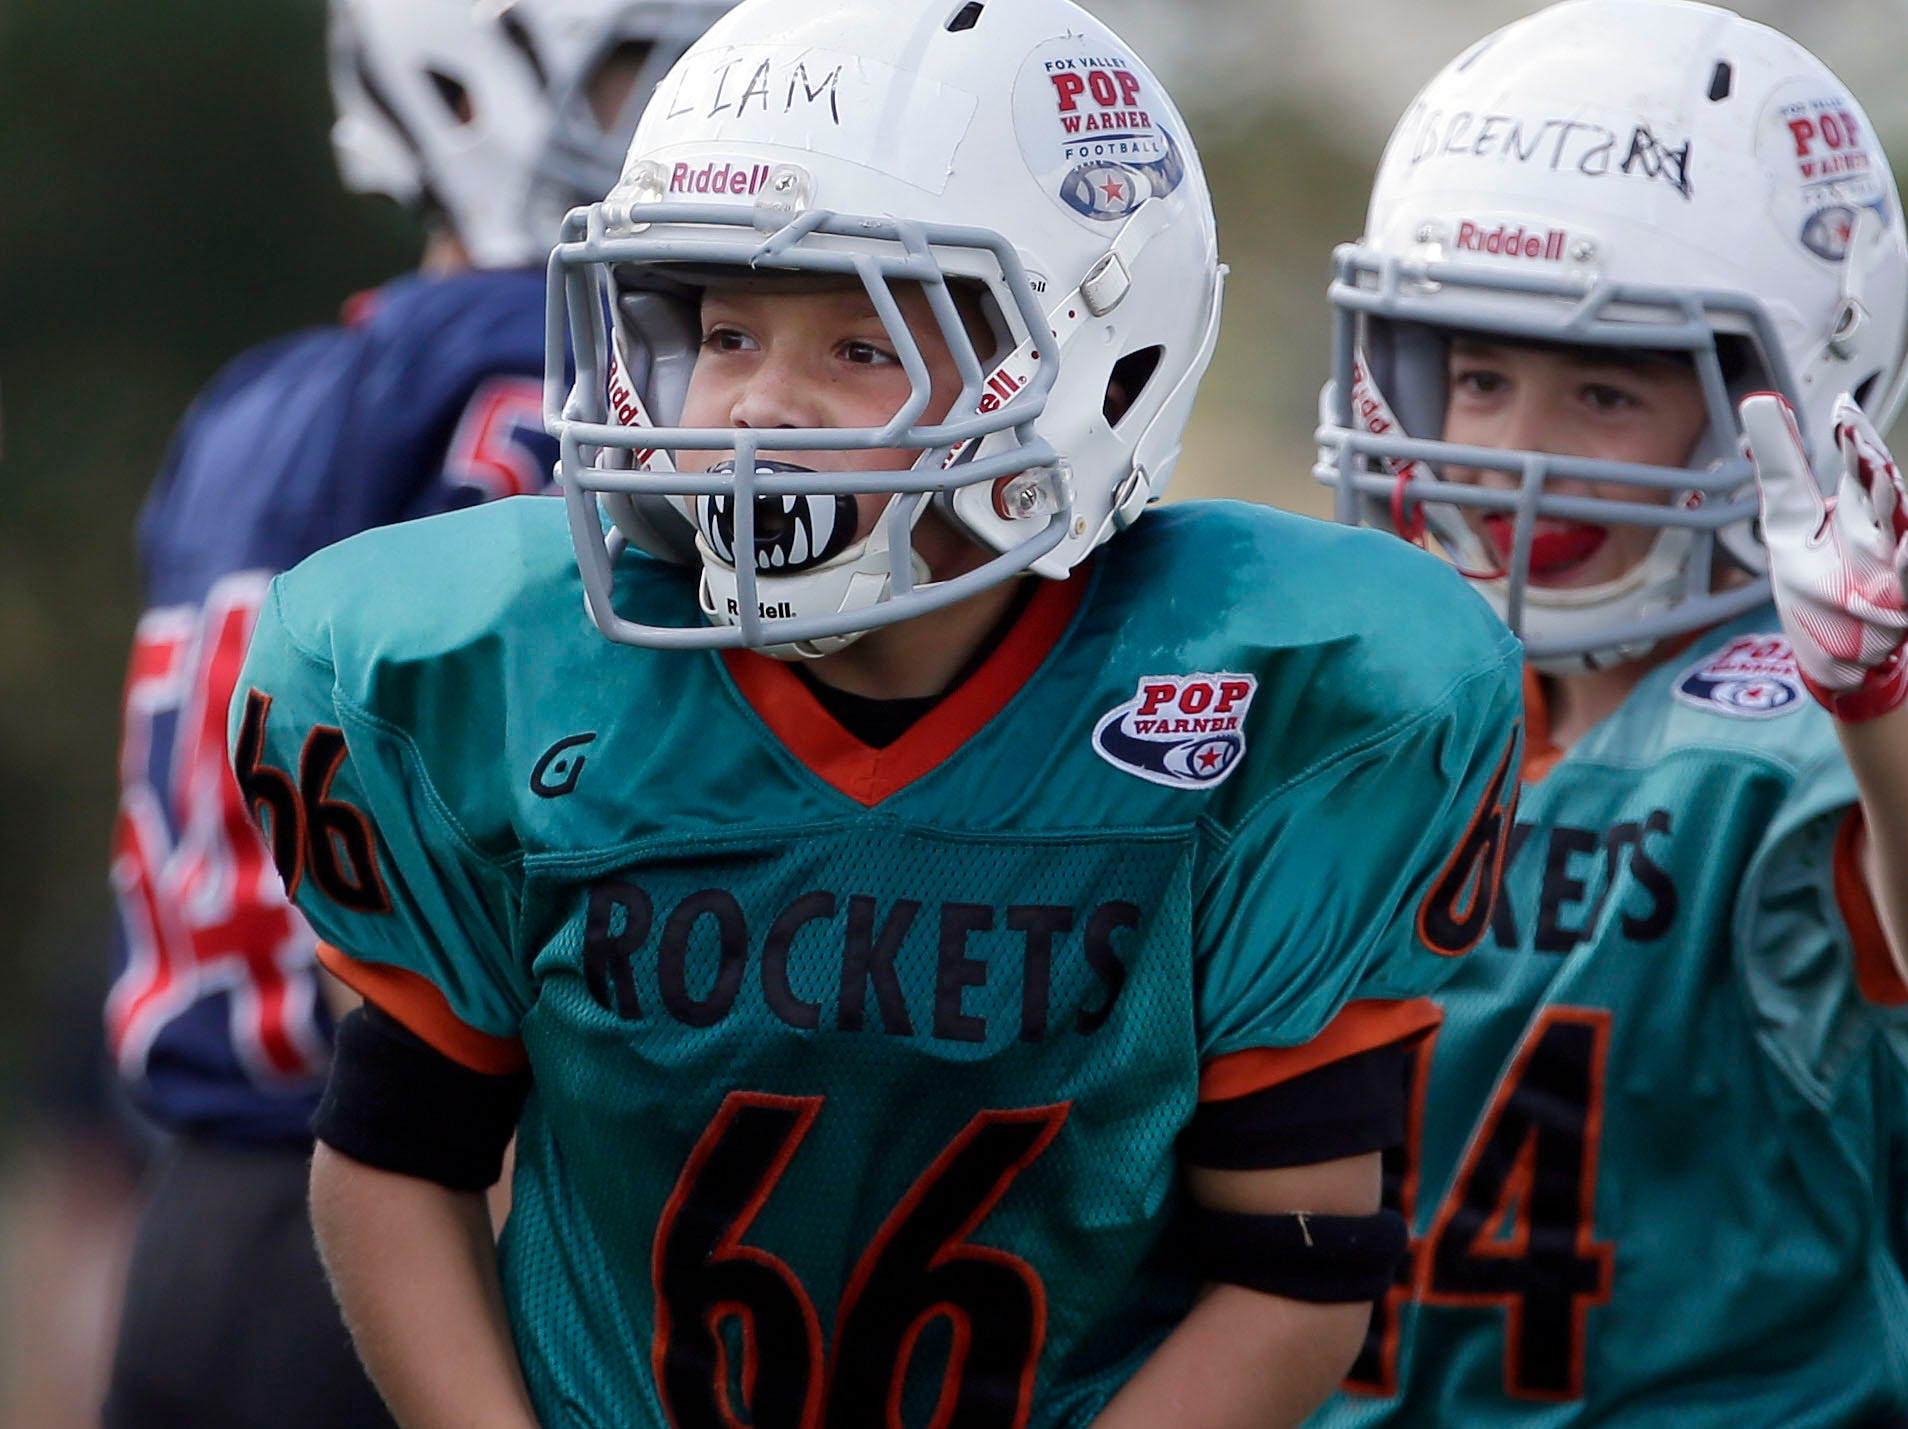 Liam Kelley of the Rockets flexes after a tackle against the Patriots as Fox Valley Pop Warner Football opens the season Saturday, September 8, 2018, at Plamann Park in Grand Chute, Wis.Ron Page/USA TODAY NETWORK-Wisconsin